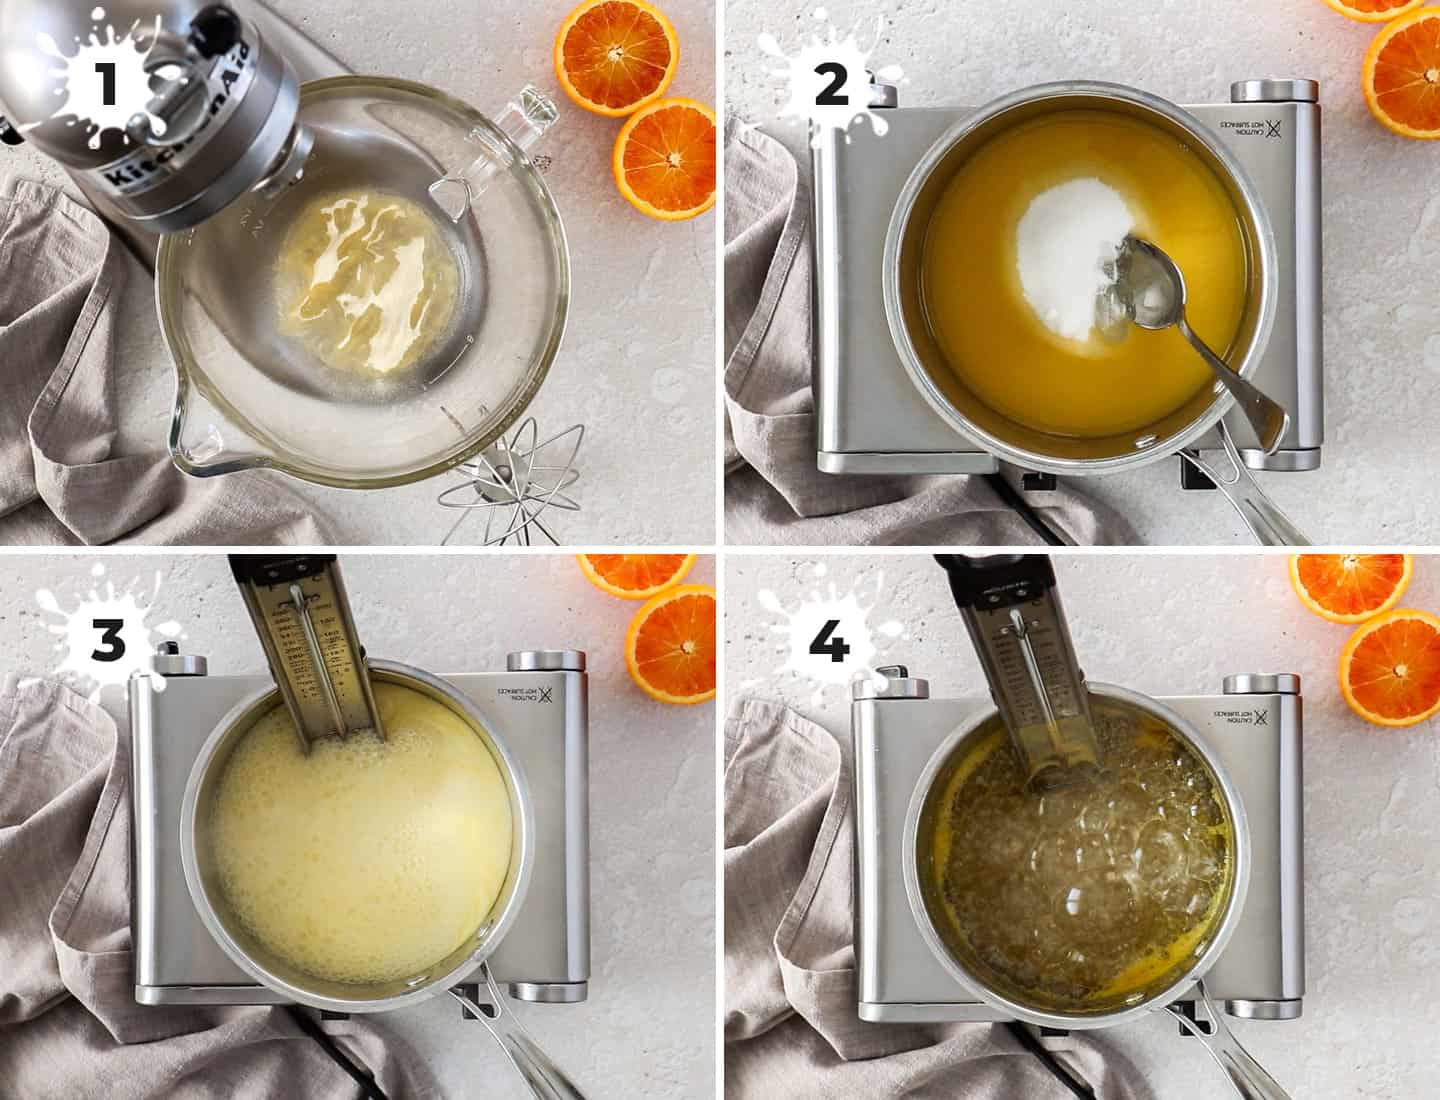 A collage of 4 images showing how to make the syrup for the marshmallows.